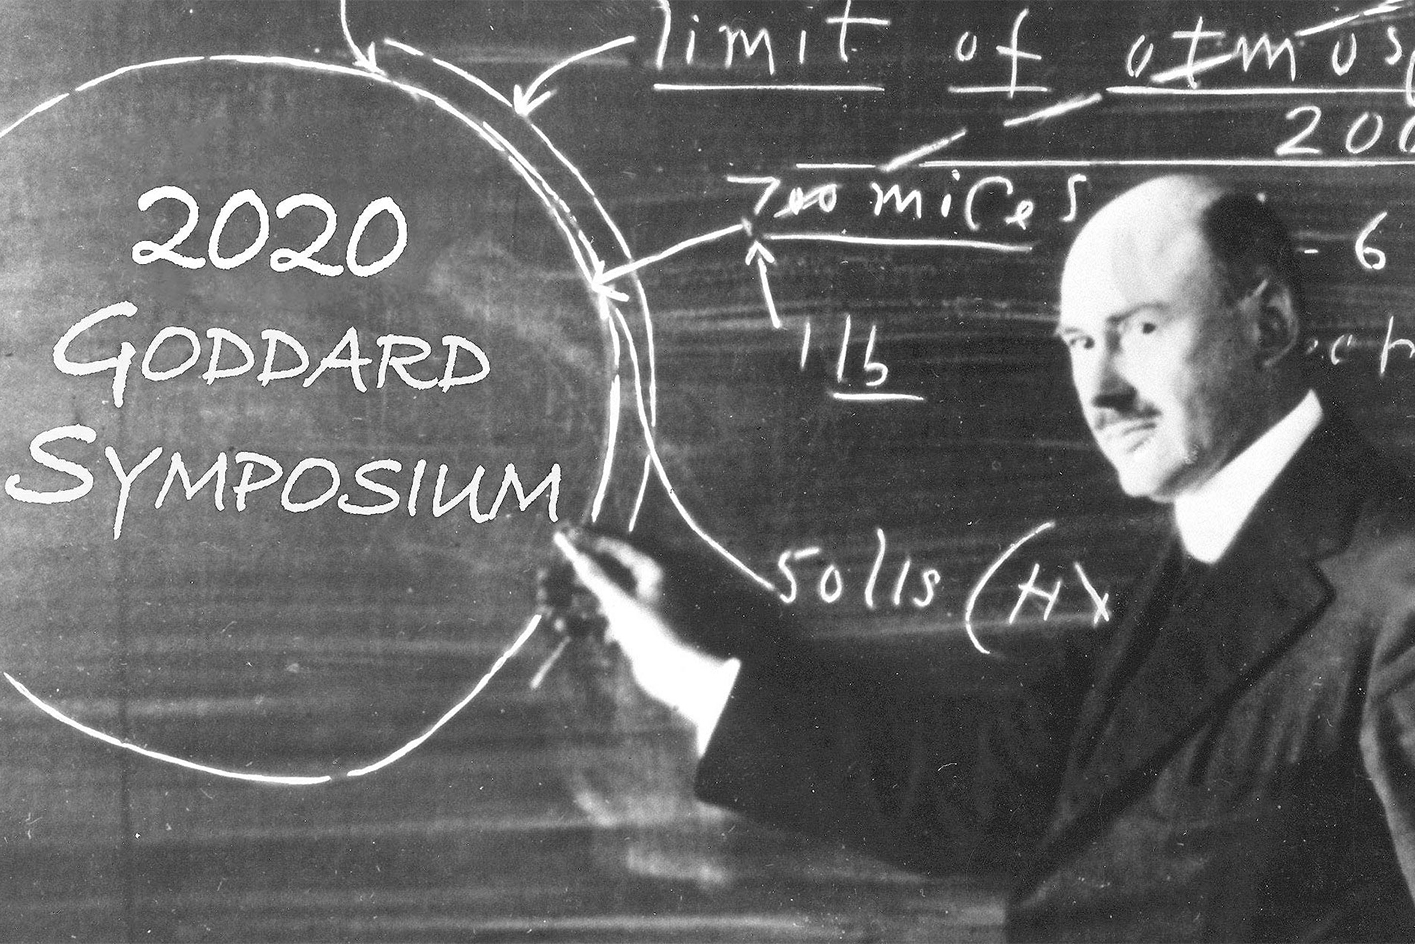 Robert H. Goddard Memorial Symposium